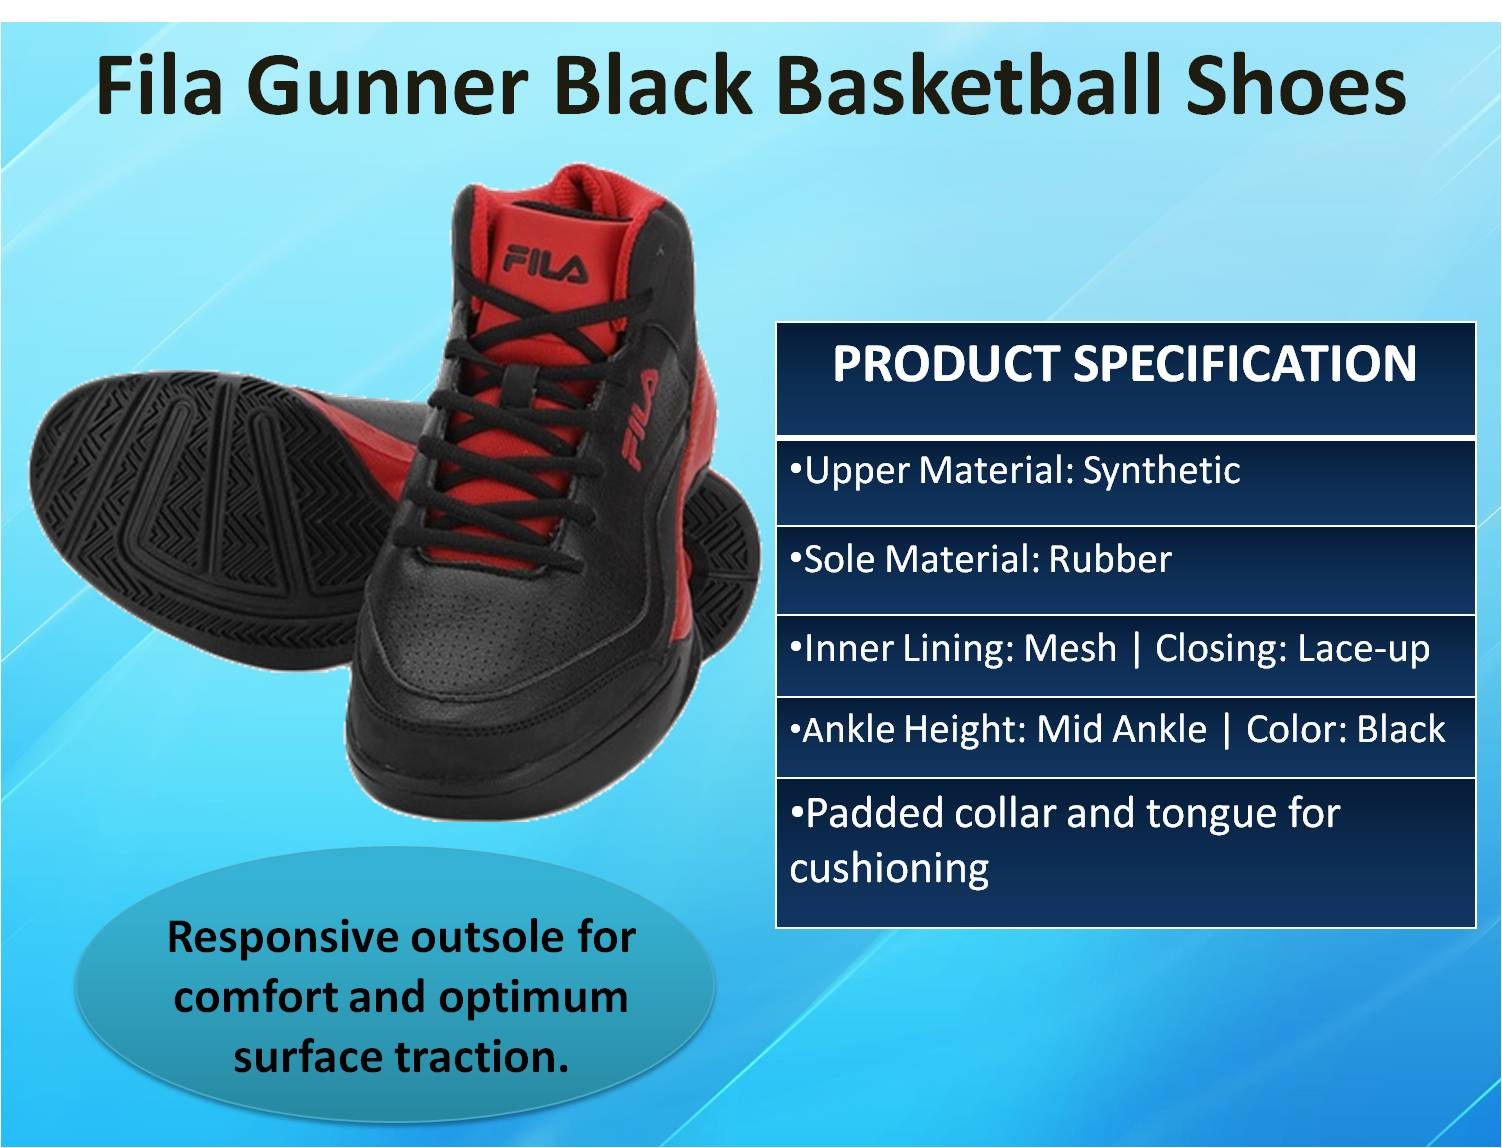 Fila Gunner Black Basketball Shoes